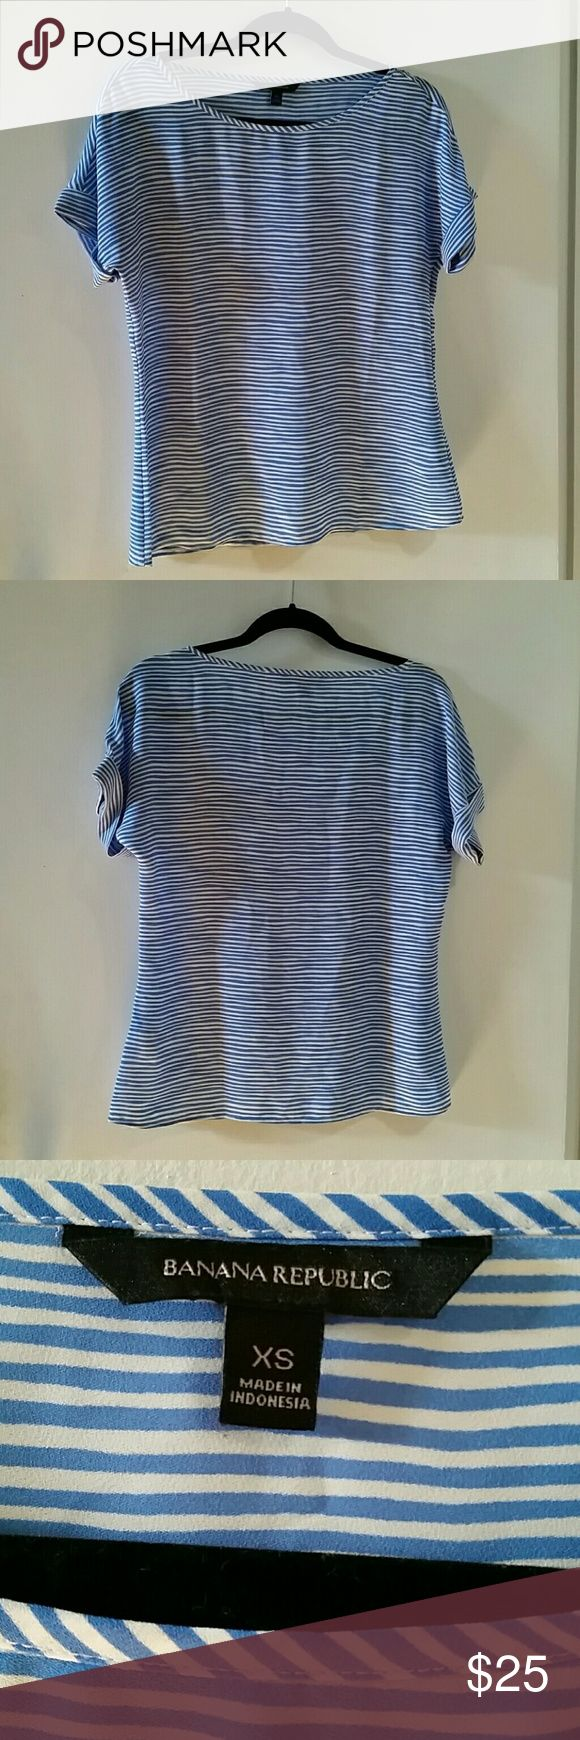 Banana Re public Nautical Blouse Darling blue & white nautical inspired short sleeve blouse by Banana Republic,  size xsmall. In excellent pre-owned condition. No rips, stains, or pulls. Worn twice and hand washed / hung to dry.   Reasonable offers will be considered. No trades or PayPal. Happy Poshing! Banana Republic Tops